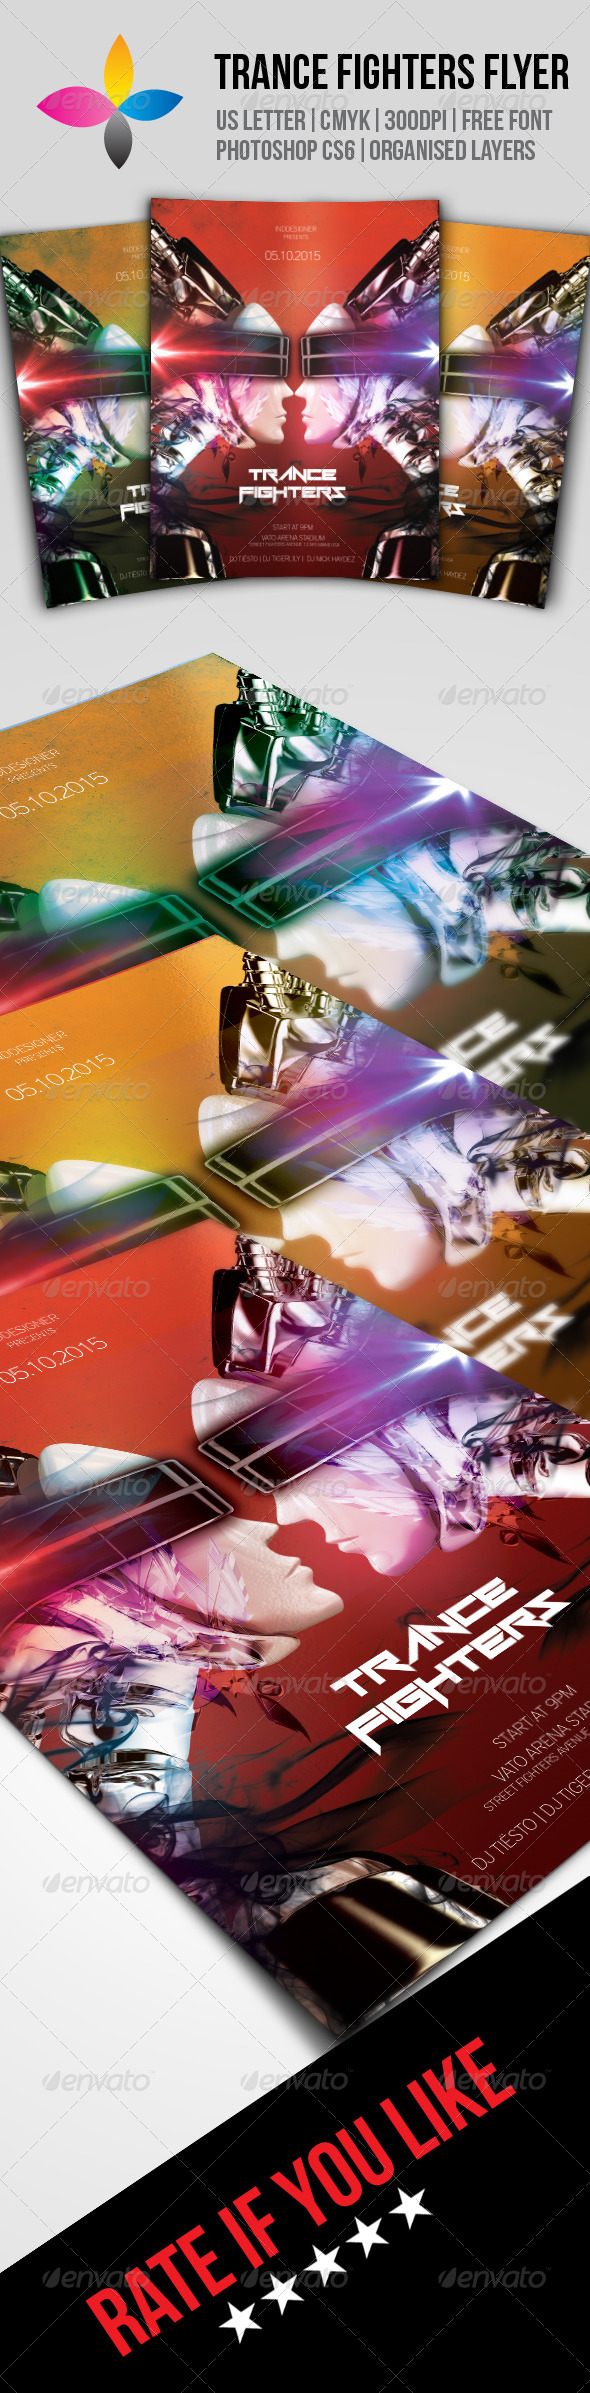 GraphicRiver Trance Fighters Flyer 7890103